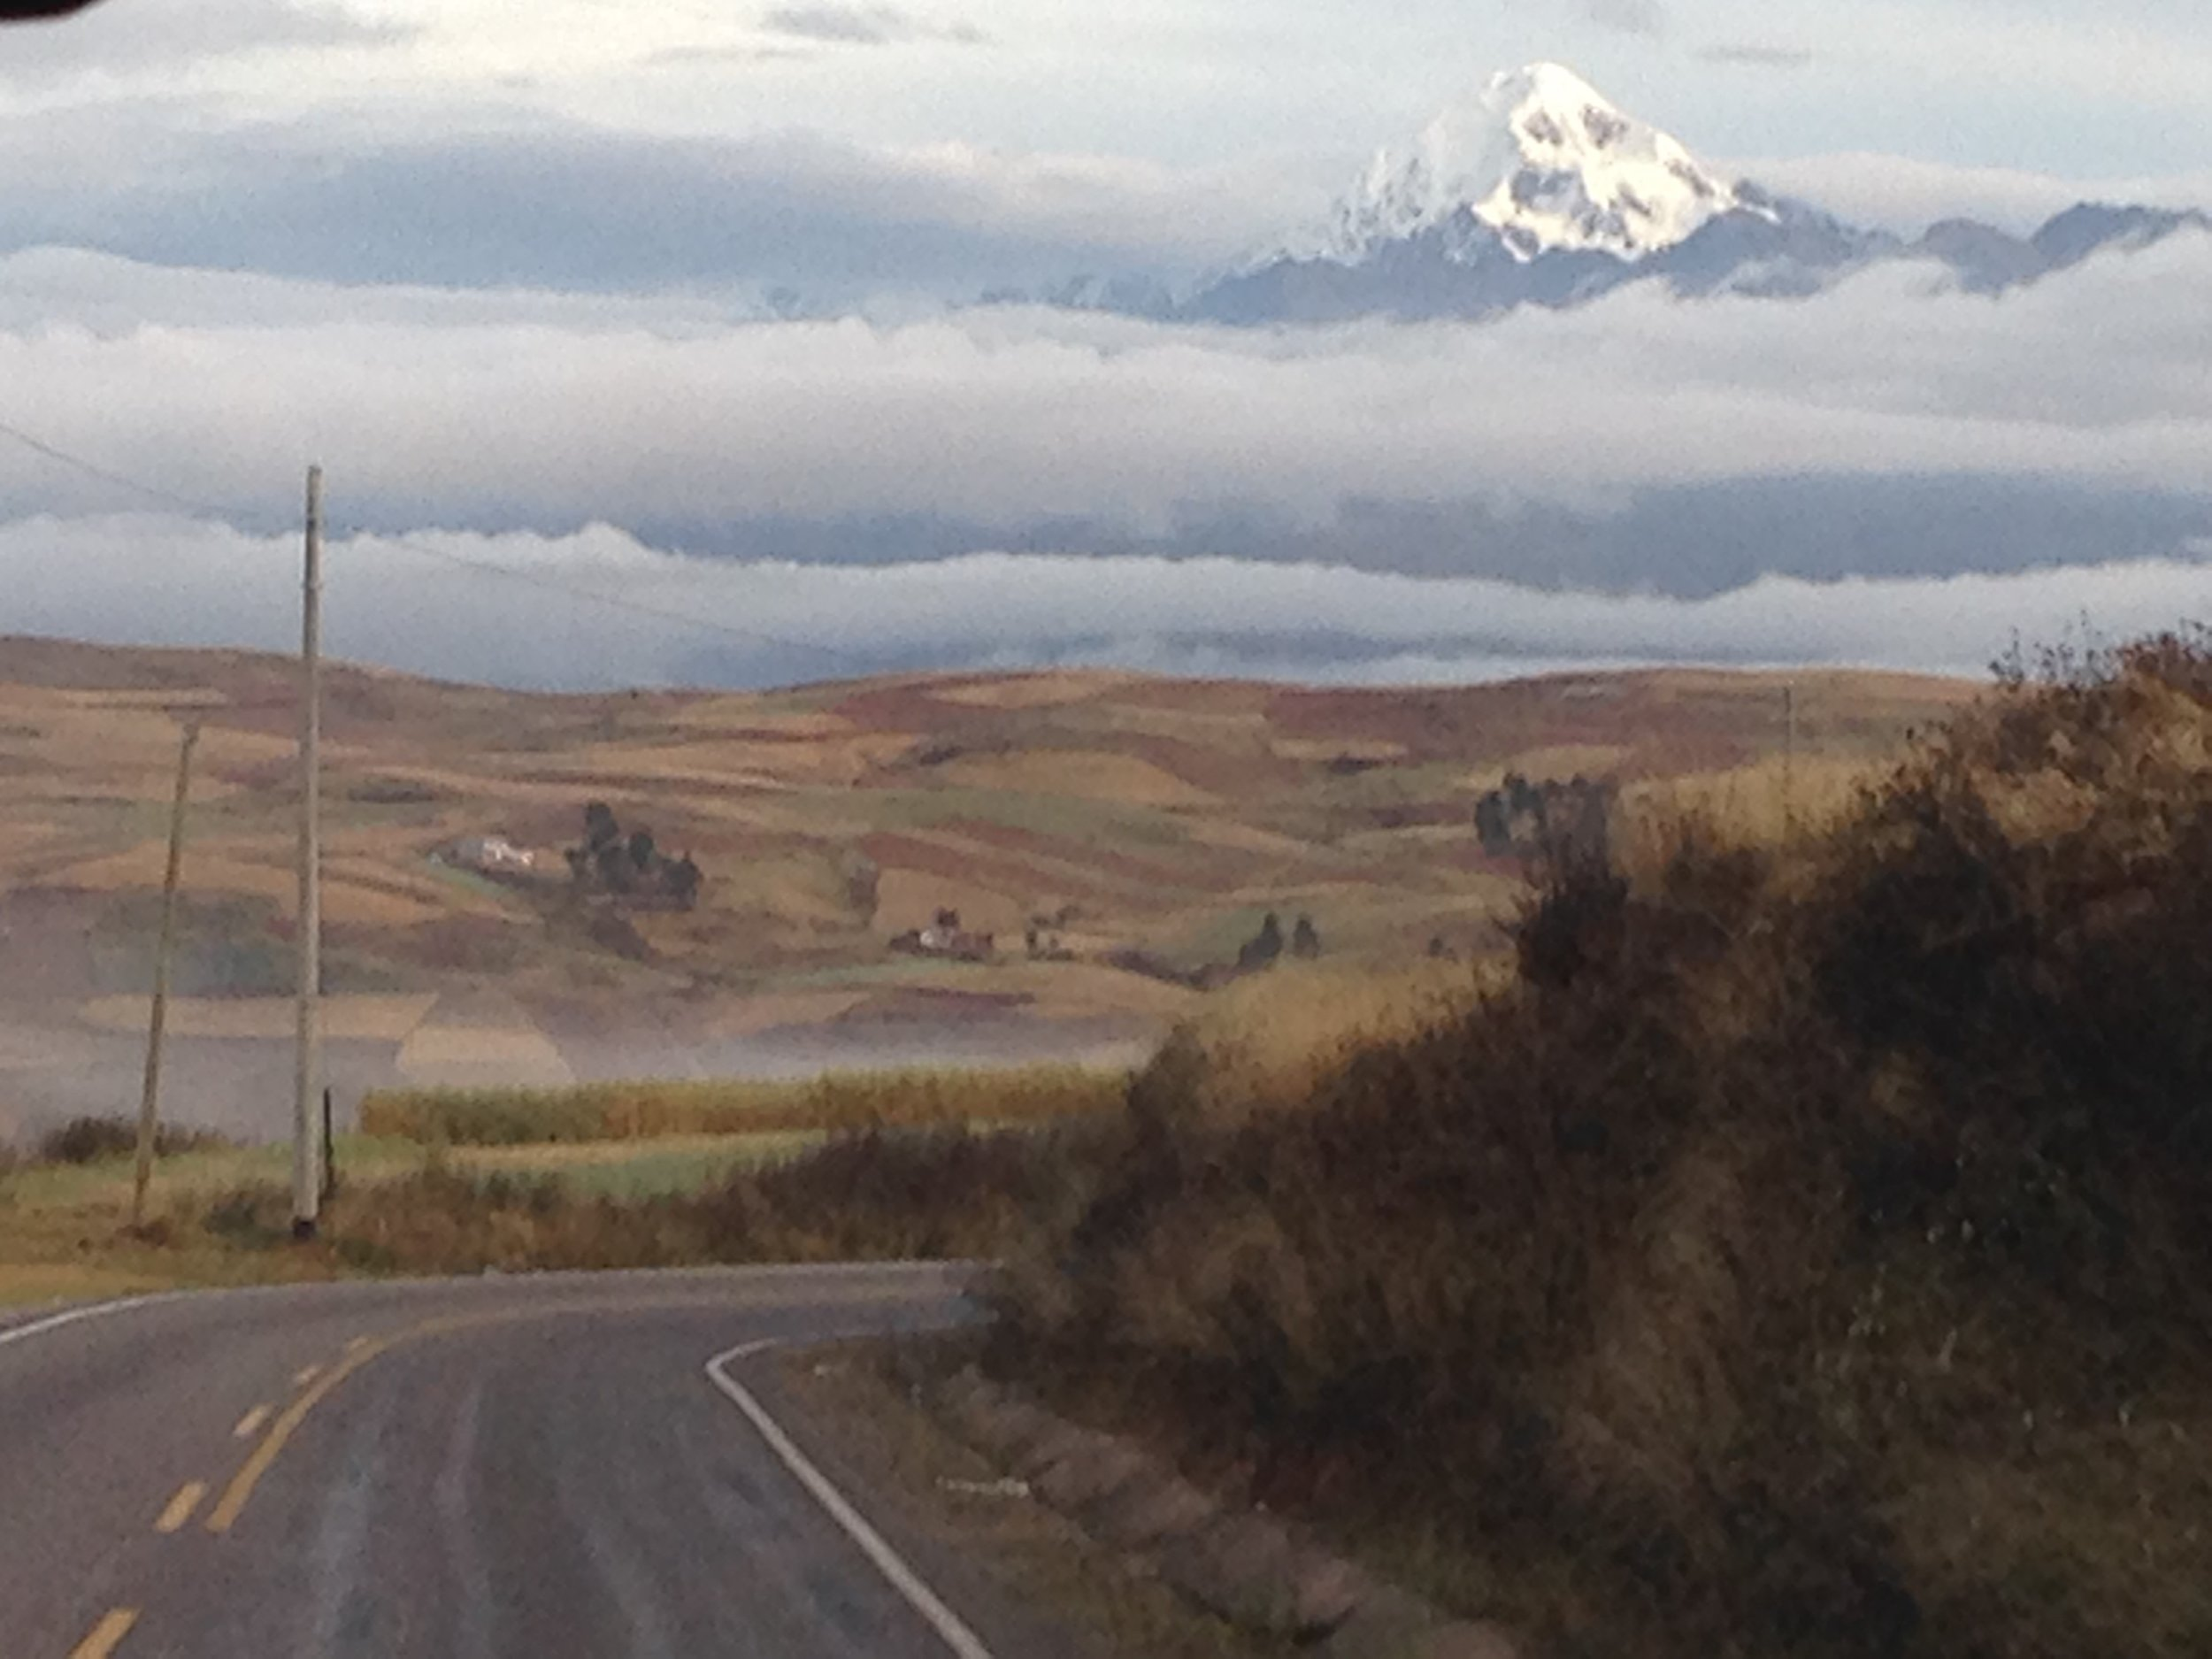 On the road to Sacred Valley